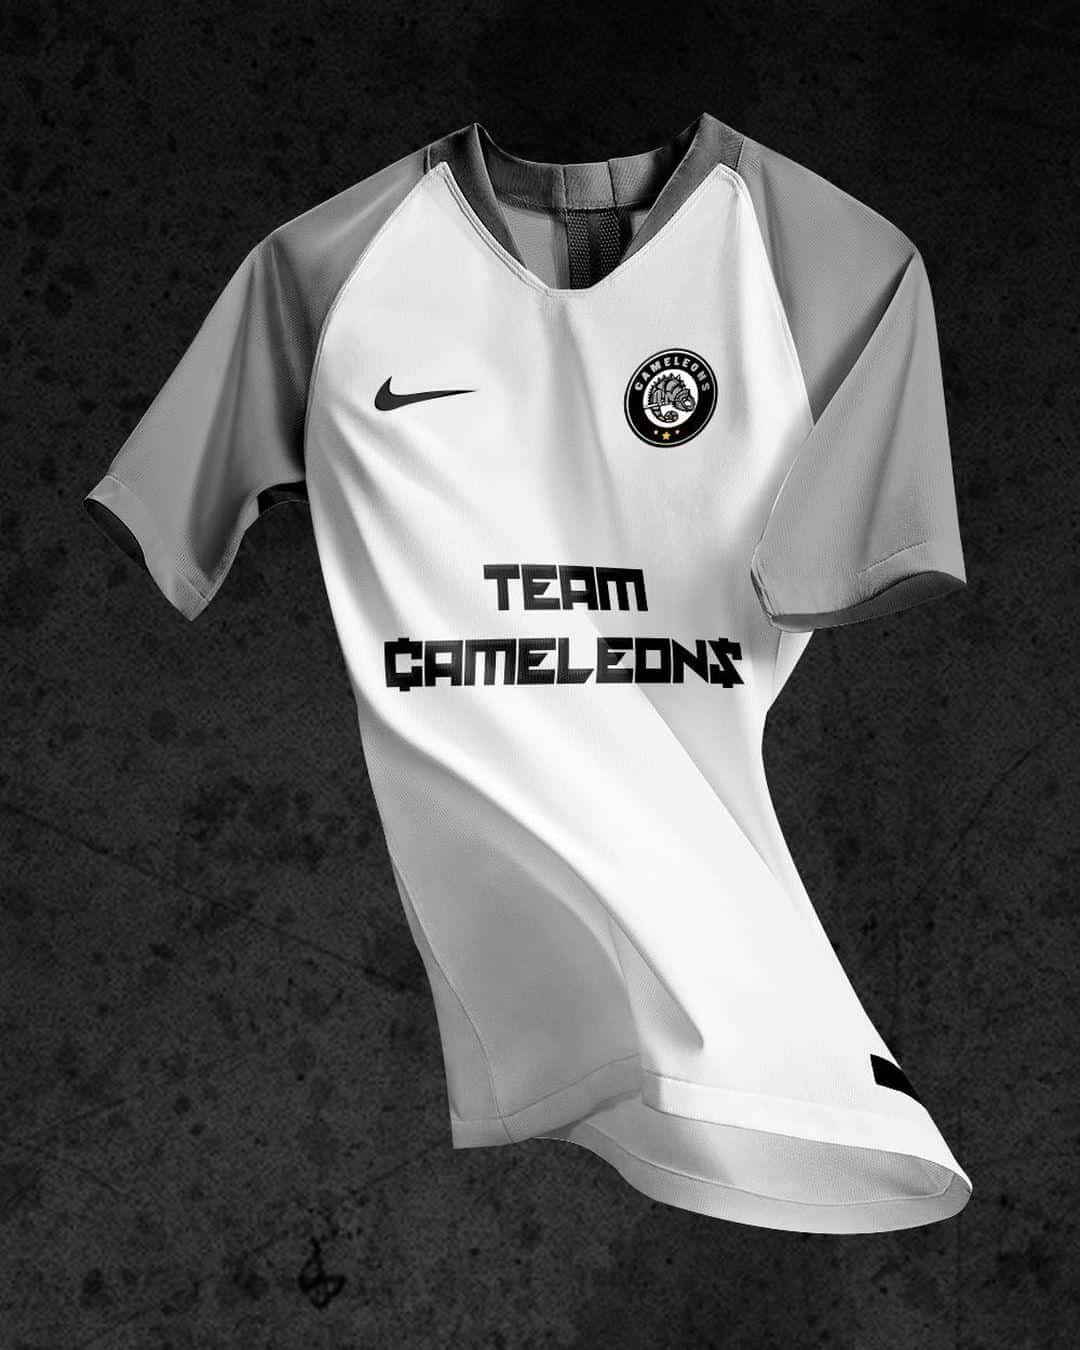 maillot-team-cameleons-nike-street-football-1